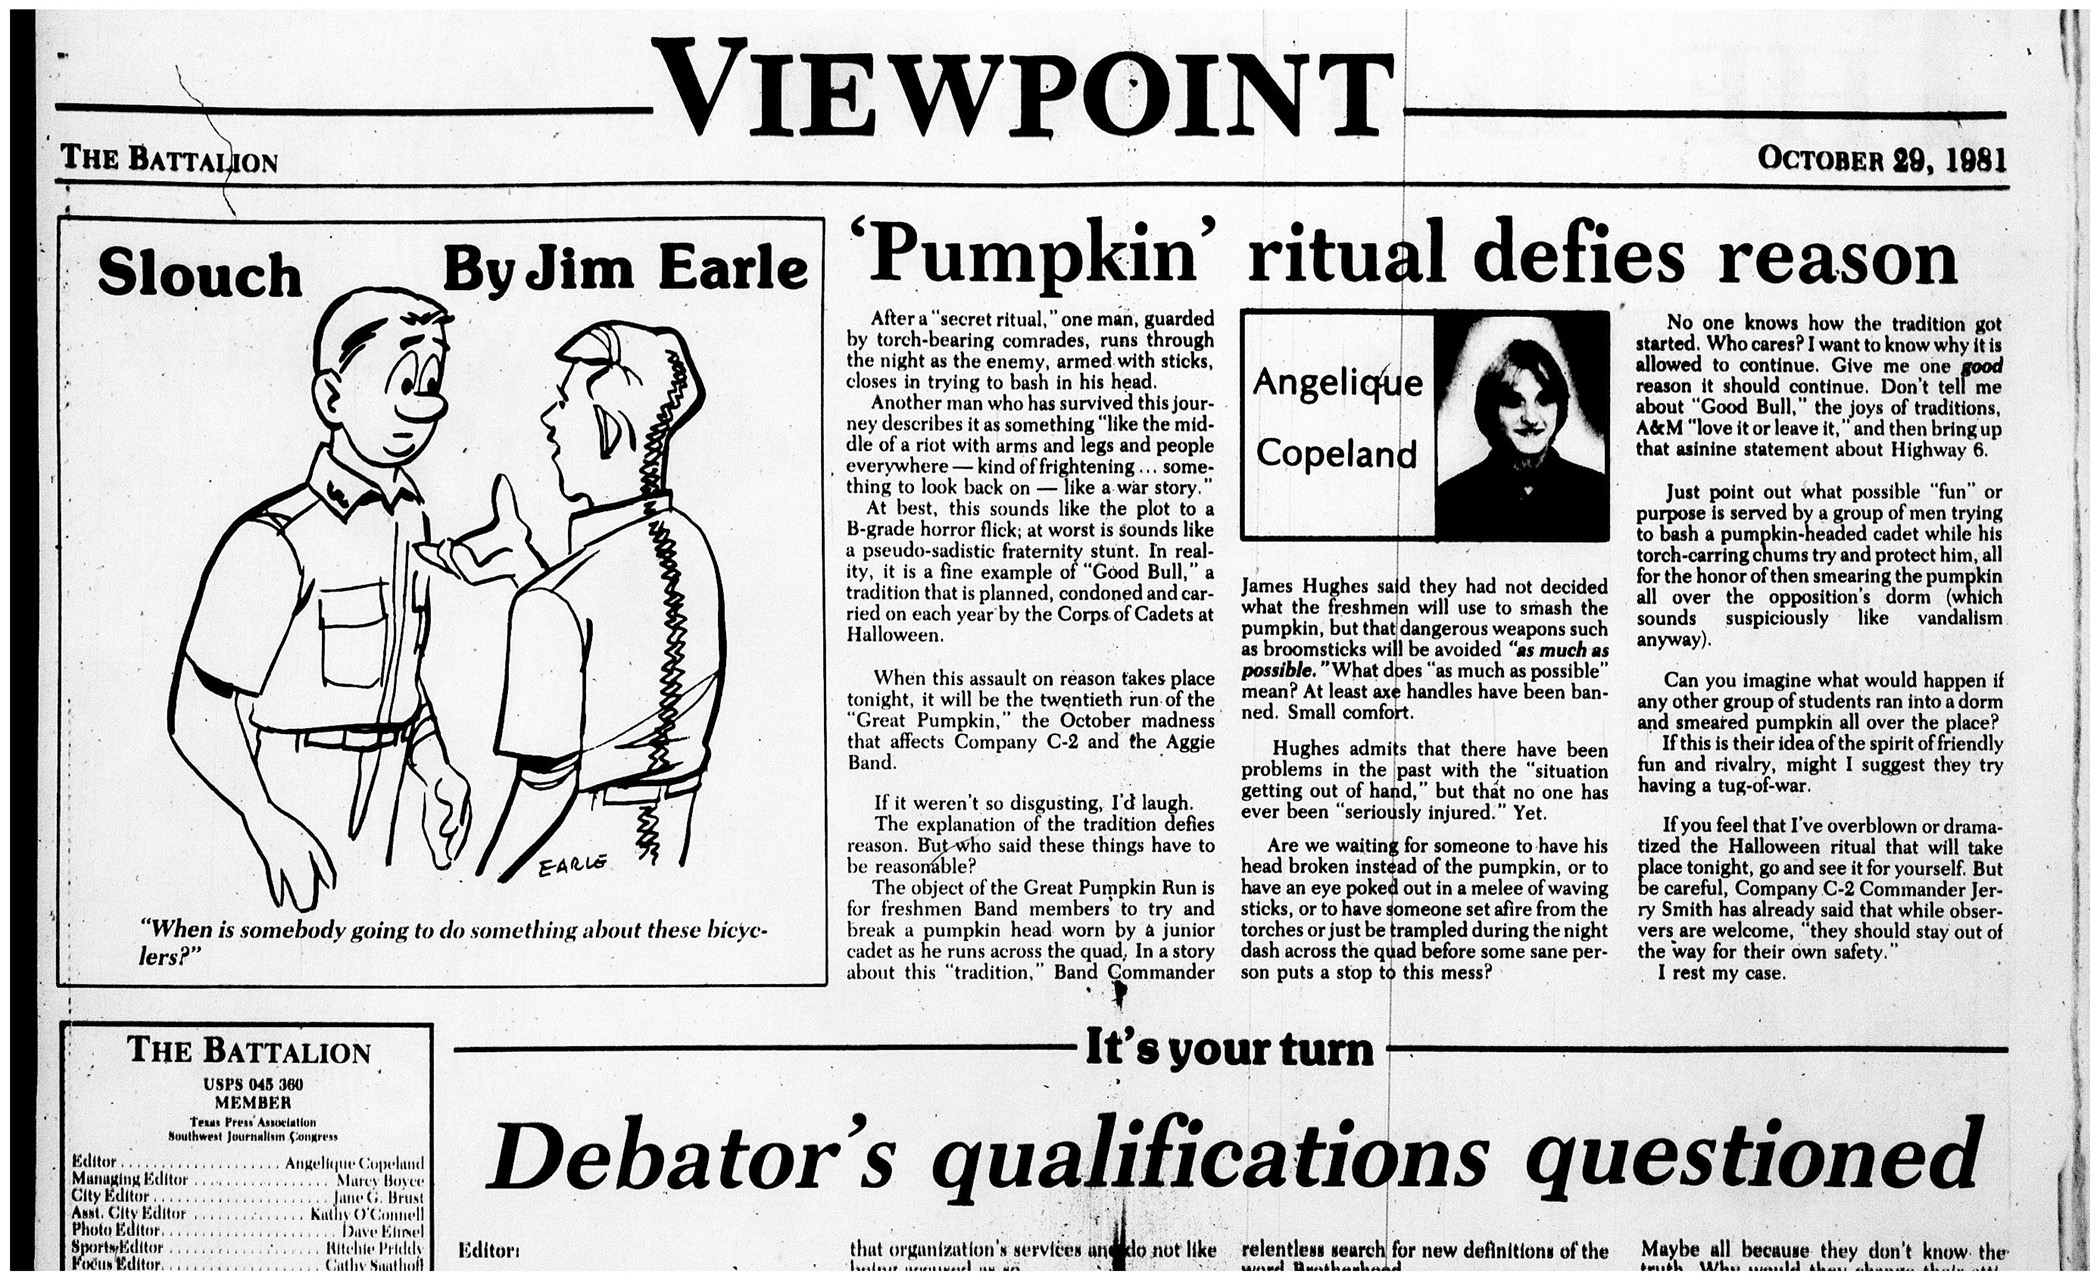 In fall of 1981, editor-in-chief of The Battalion Angelique Gammon printed an editorial voicing her opinion on the Corps' Flight of the Great Pumpkin.